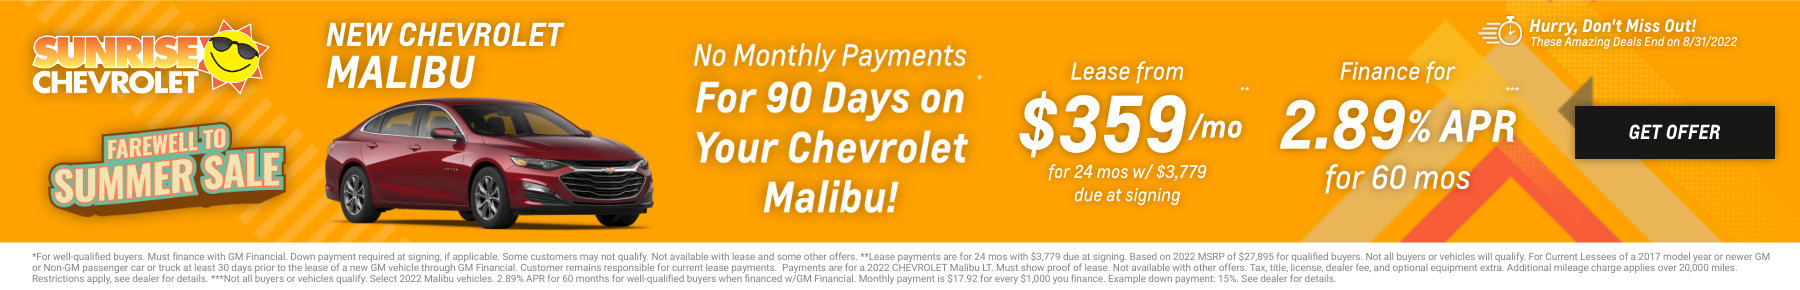 New Chevrolet Malibu Current Deals and Offers in Glendale Heights, IL